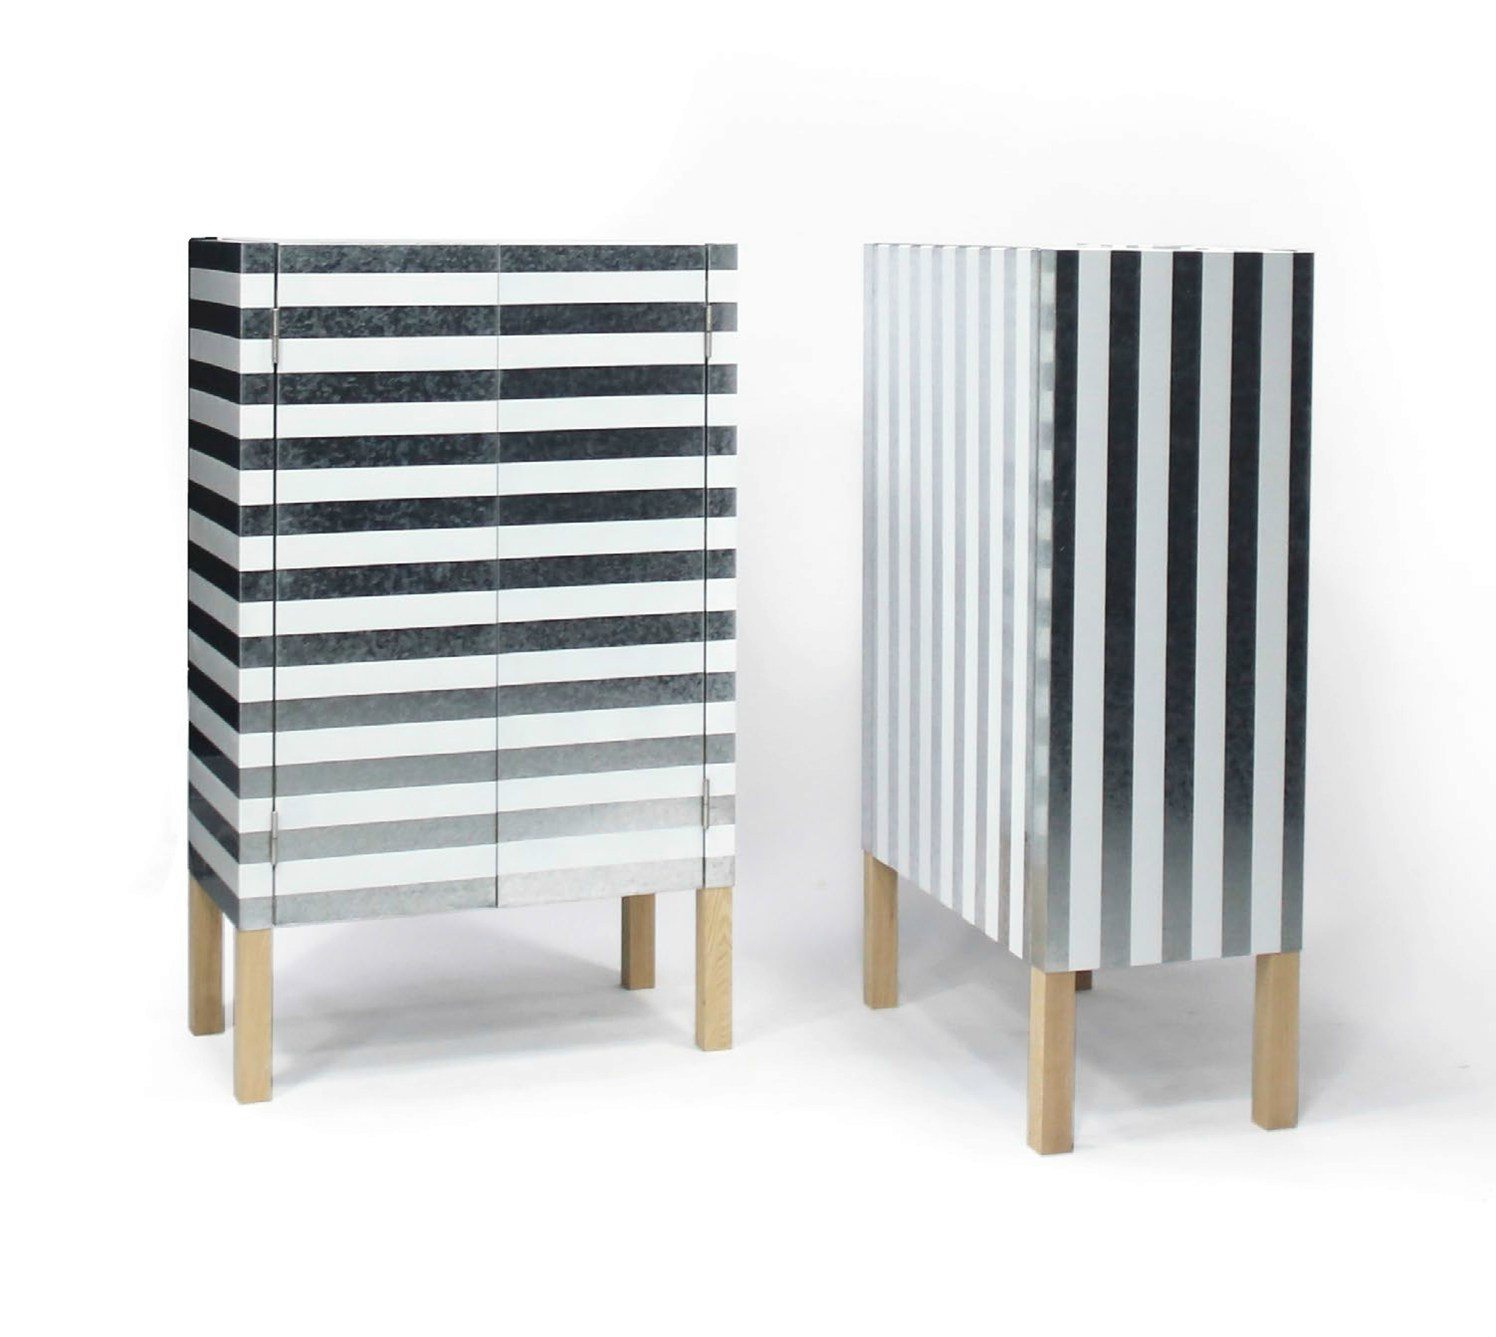 Silver Cabinet by MIRO for Industry+